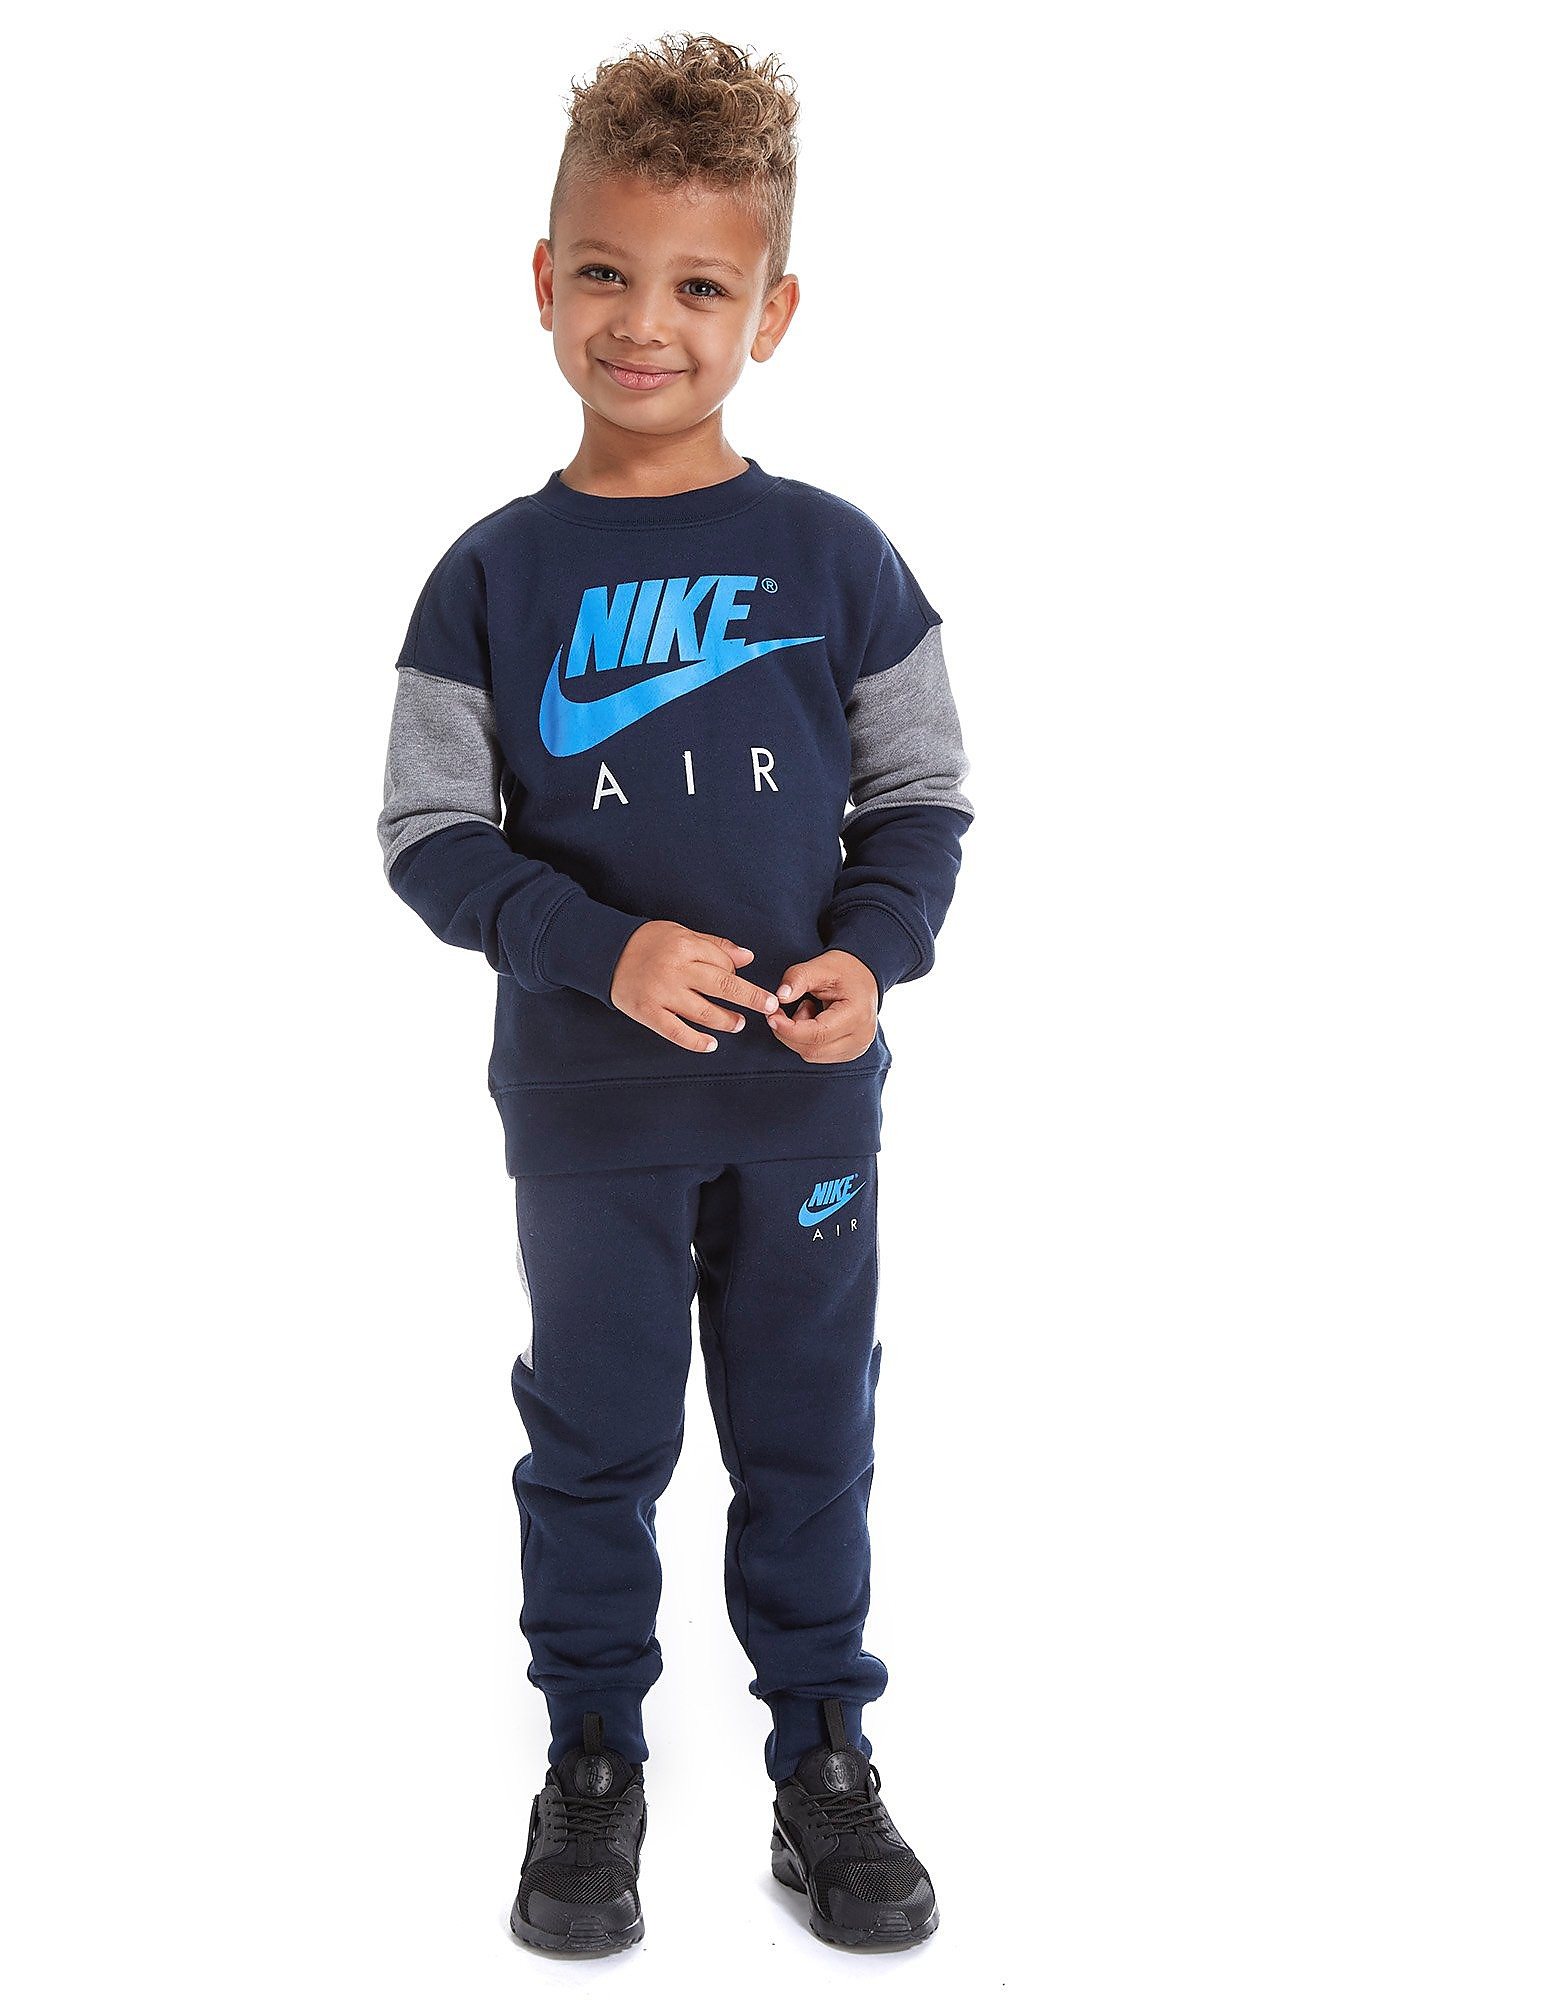 Nike SB Air Suit Children's